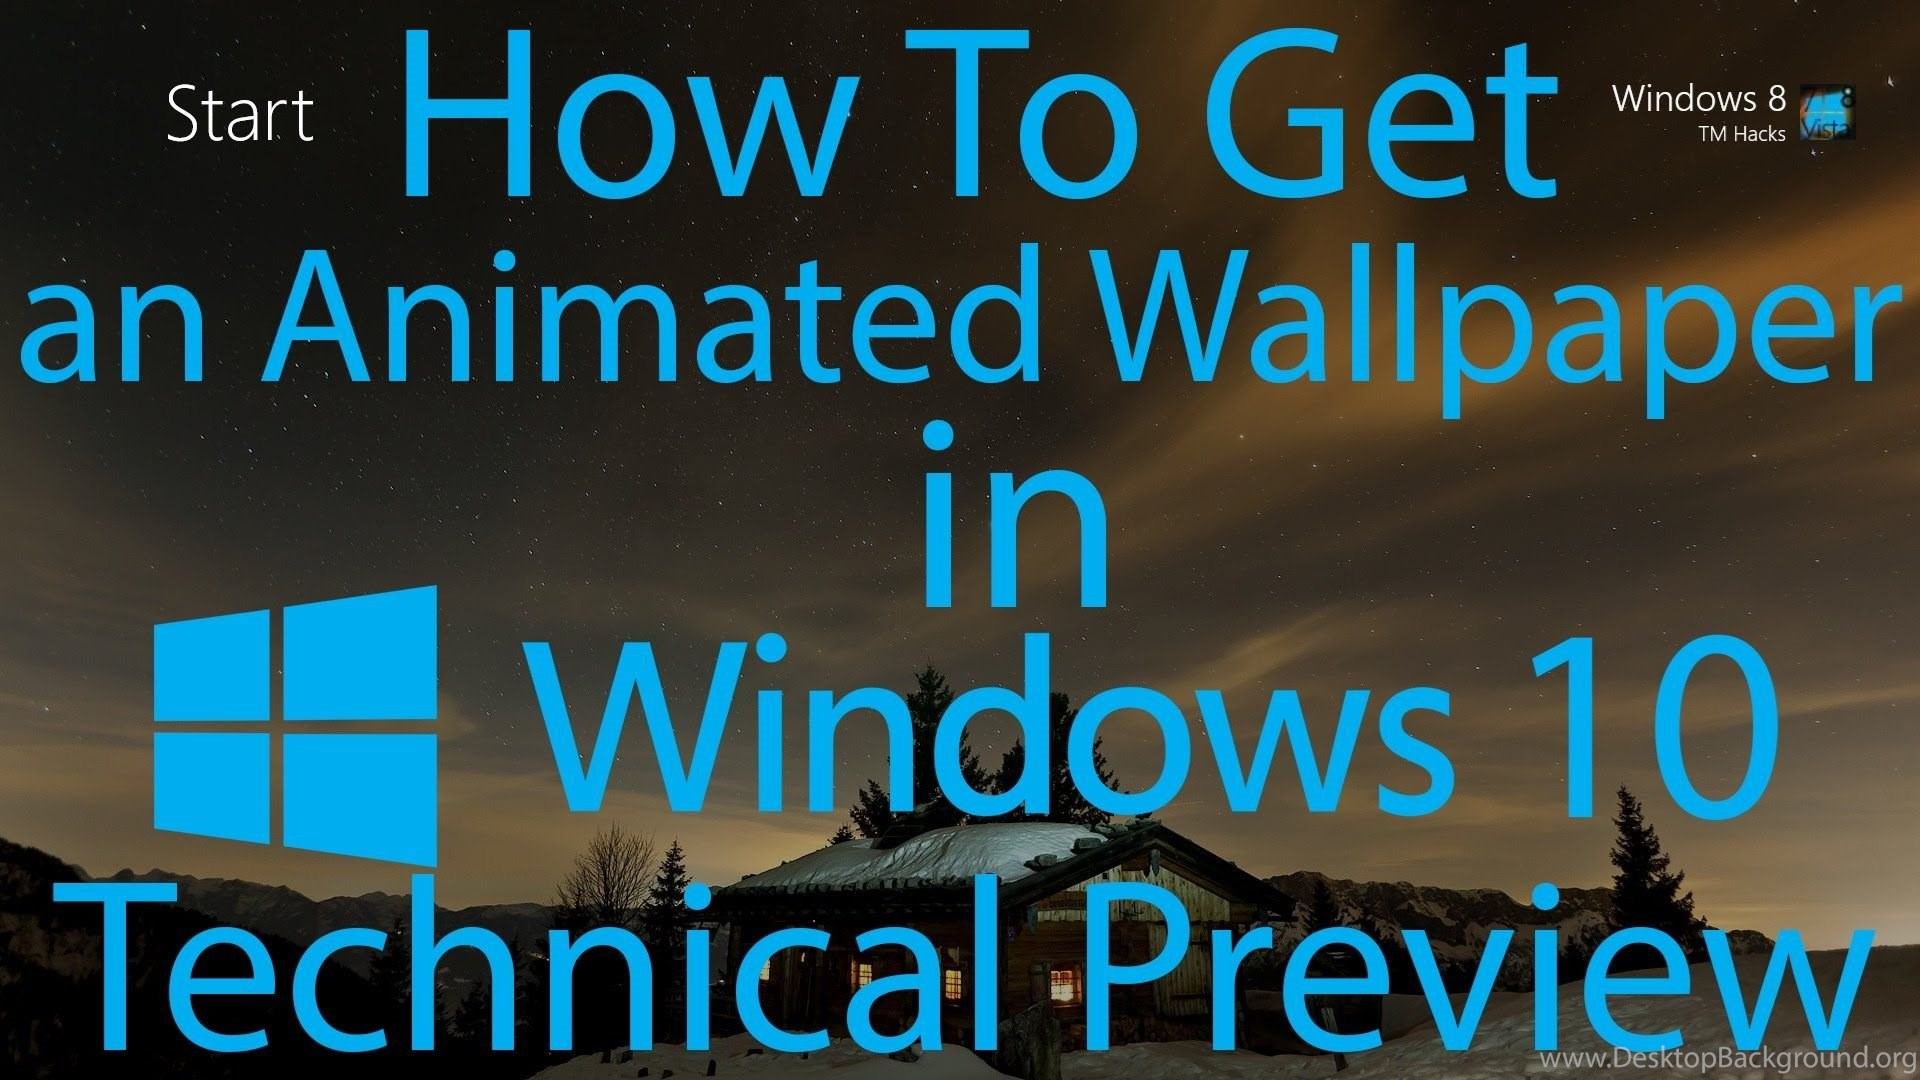 How To Have An Animated Wallpapers In Windows 10 Technical Preview